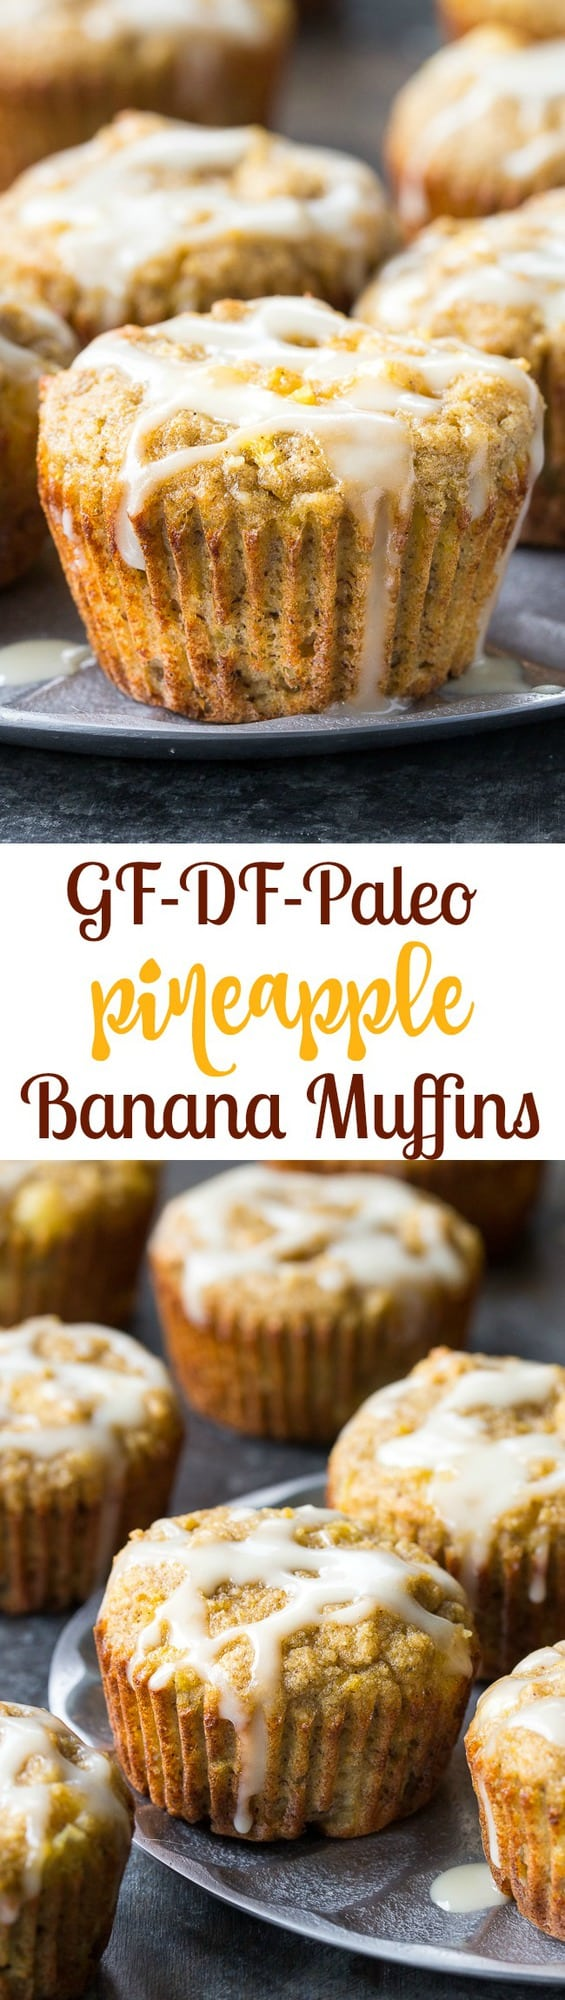 Moist and fluffy pineapple banana muffins with a coconut pineapple drizzle that tastes like a pina colada! You won't believe these tropical muffins are actually paleo, gluten-free, dairy-free and healthy! Great for breakfast or a snack and kid approved too!